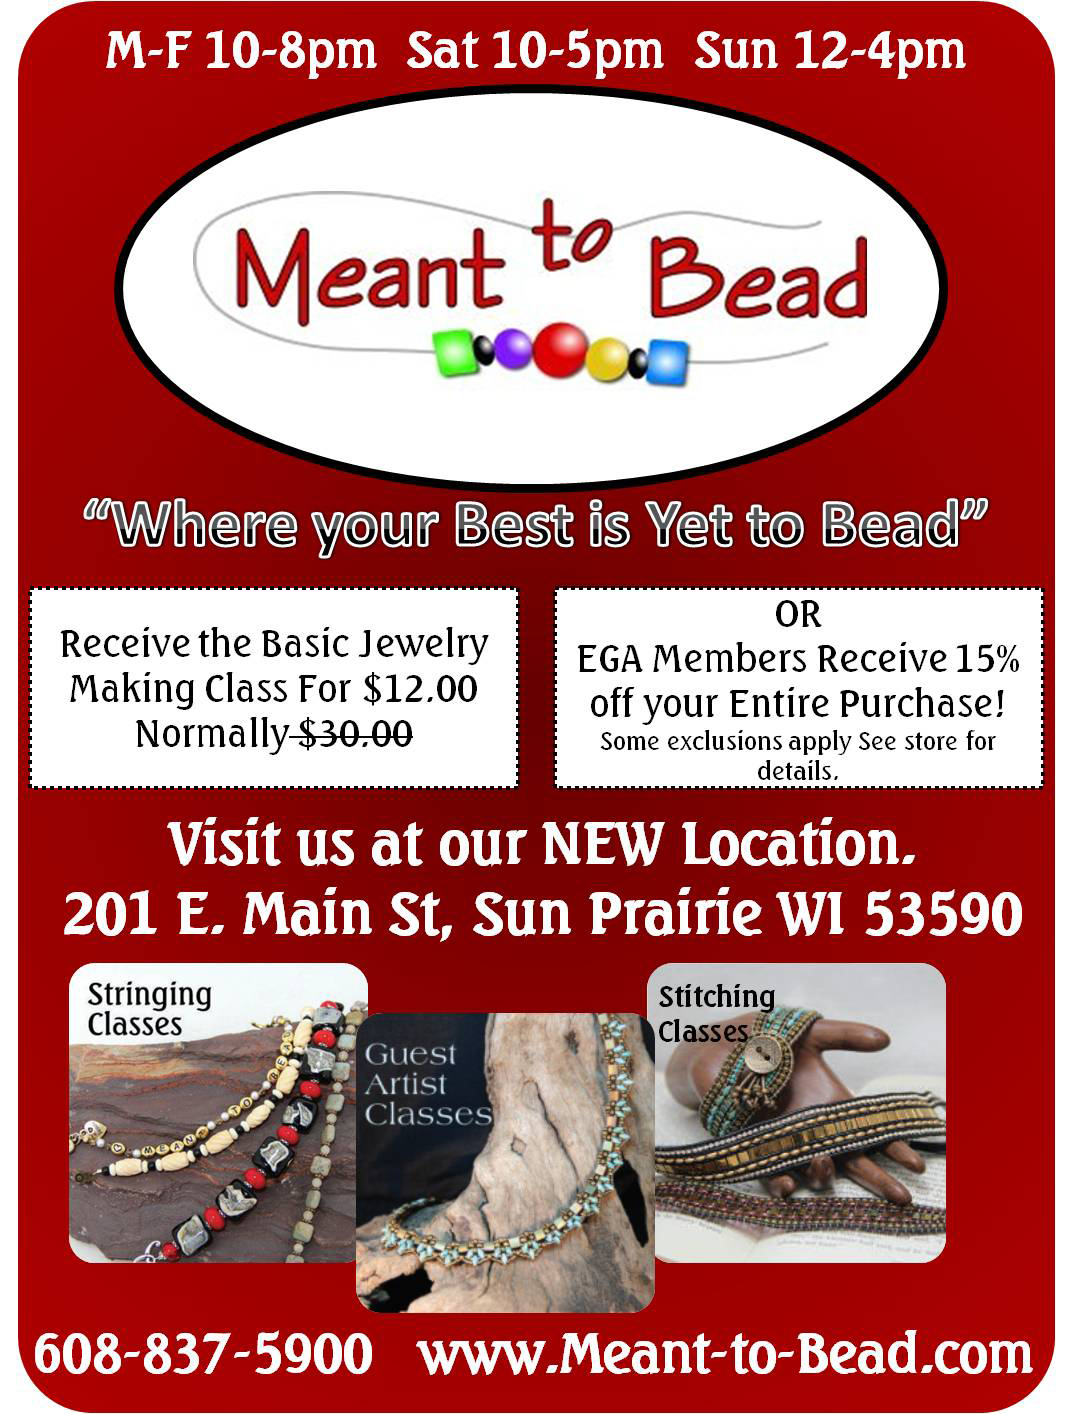 Meant To Bead Ad